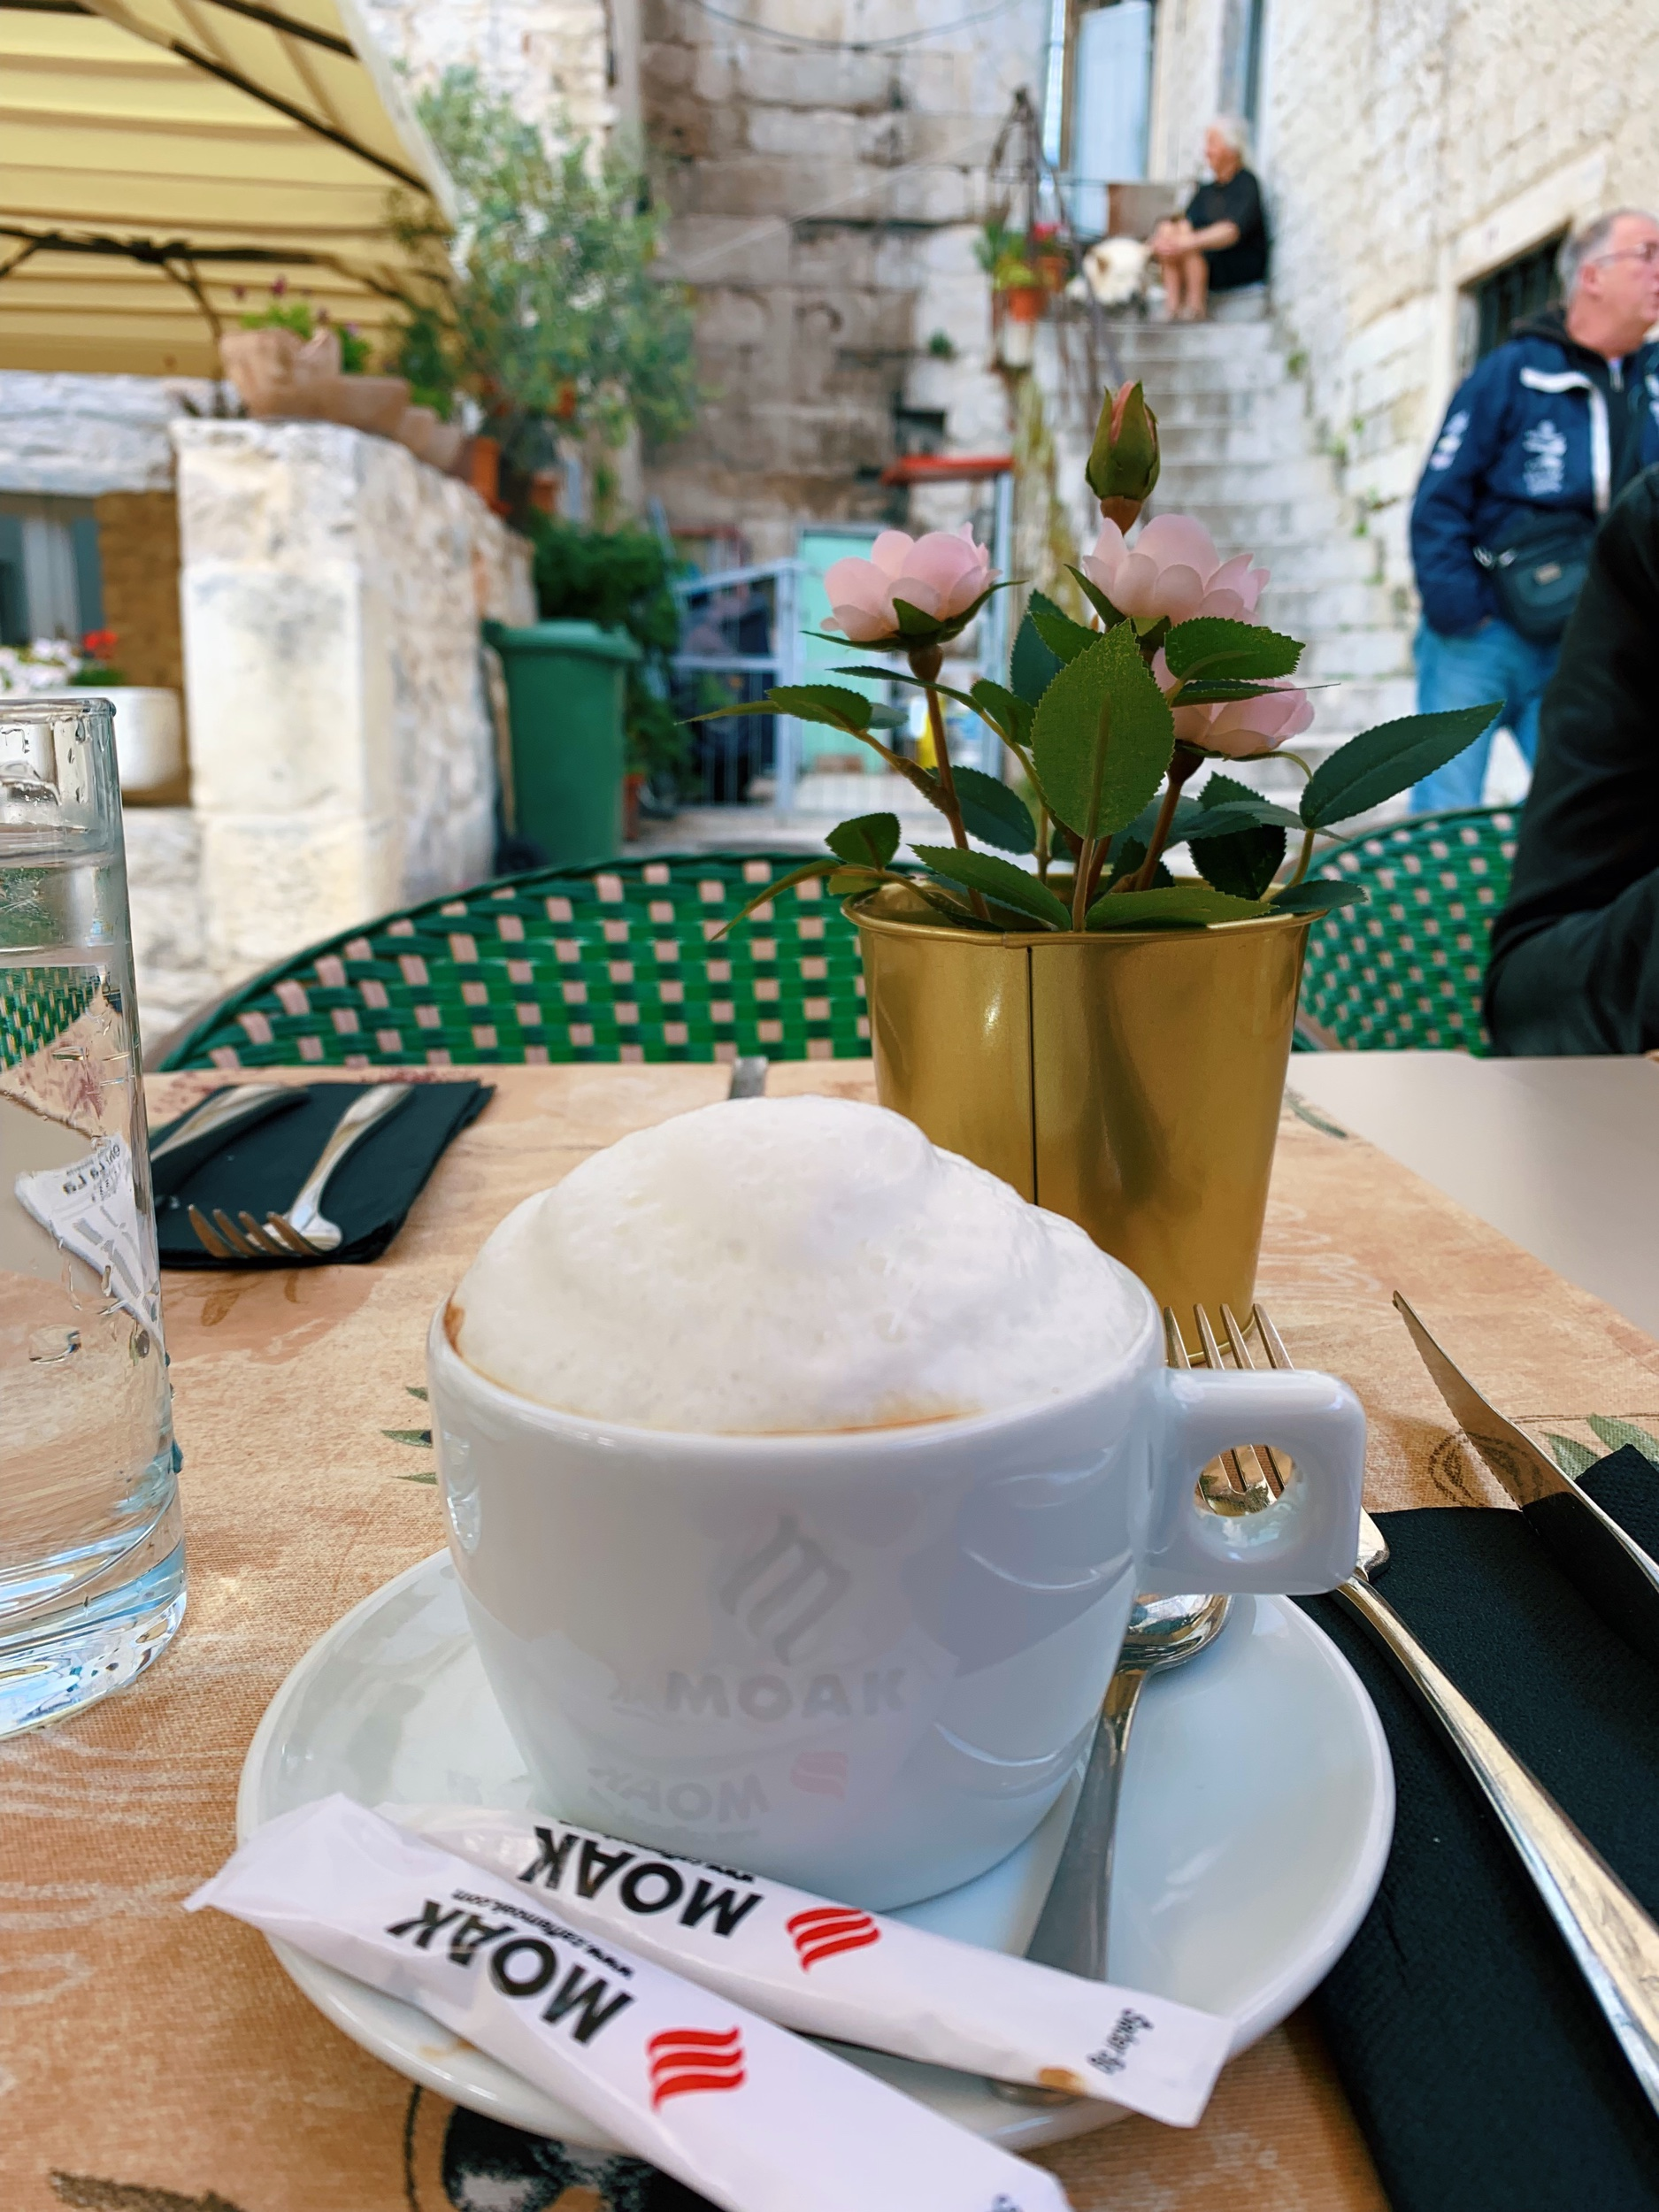 A cheeky little cappuccino to energize us for our Split walking tour.